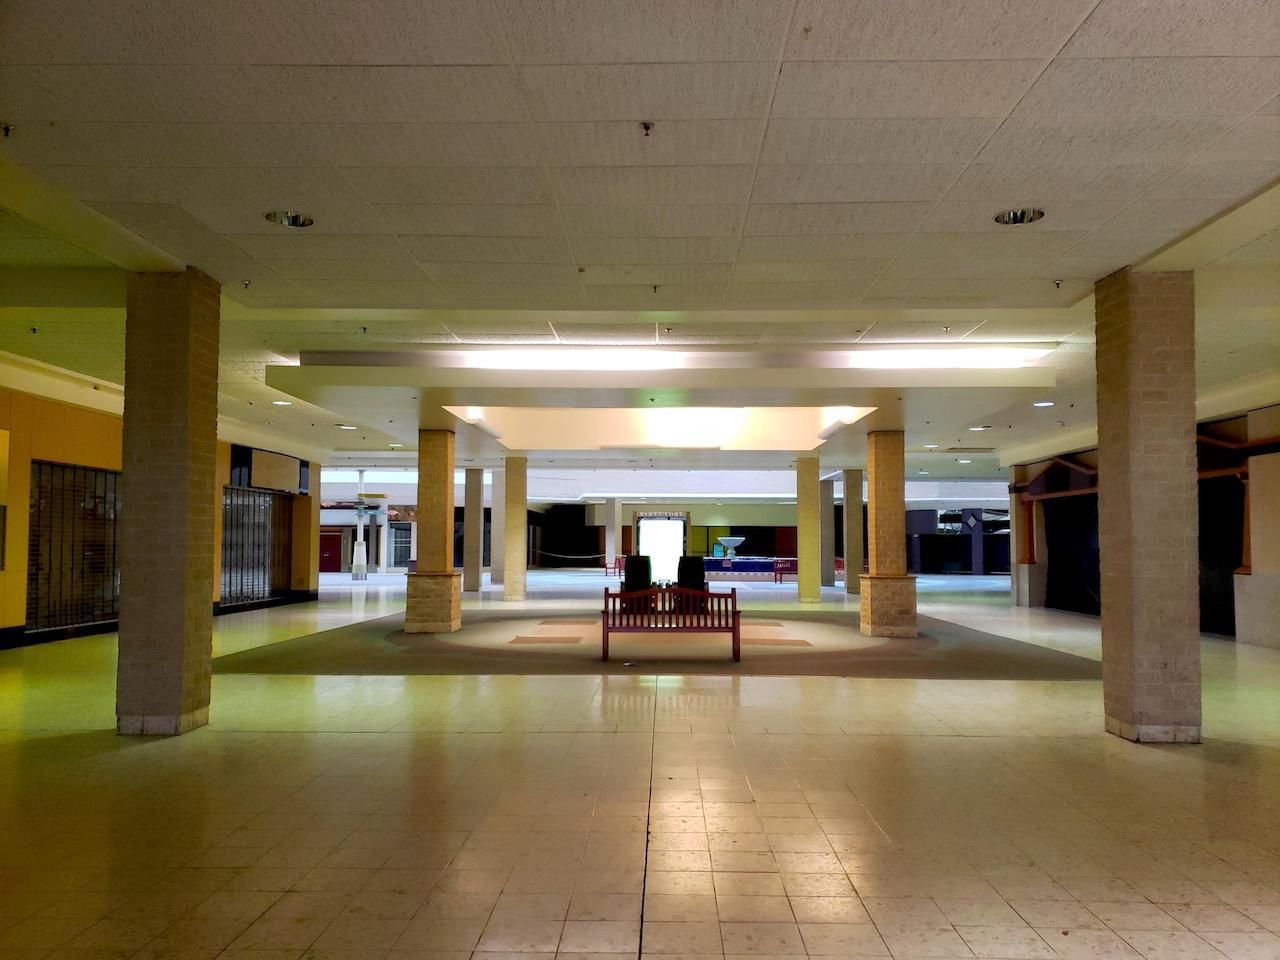 Abandoned malls from a Reddit sub